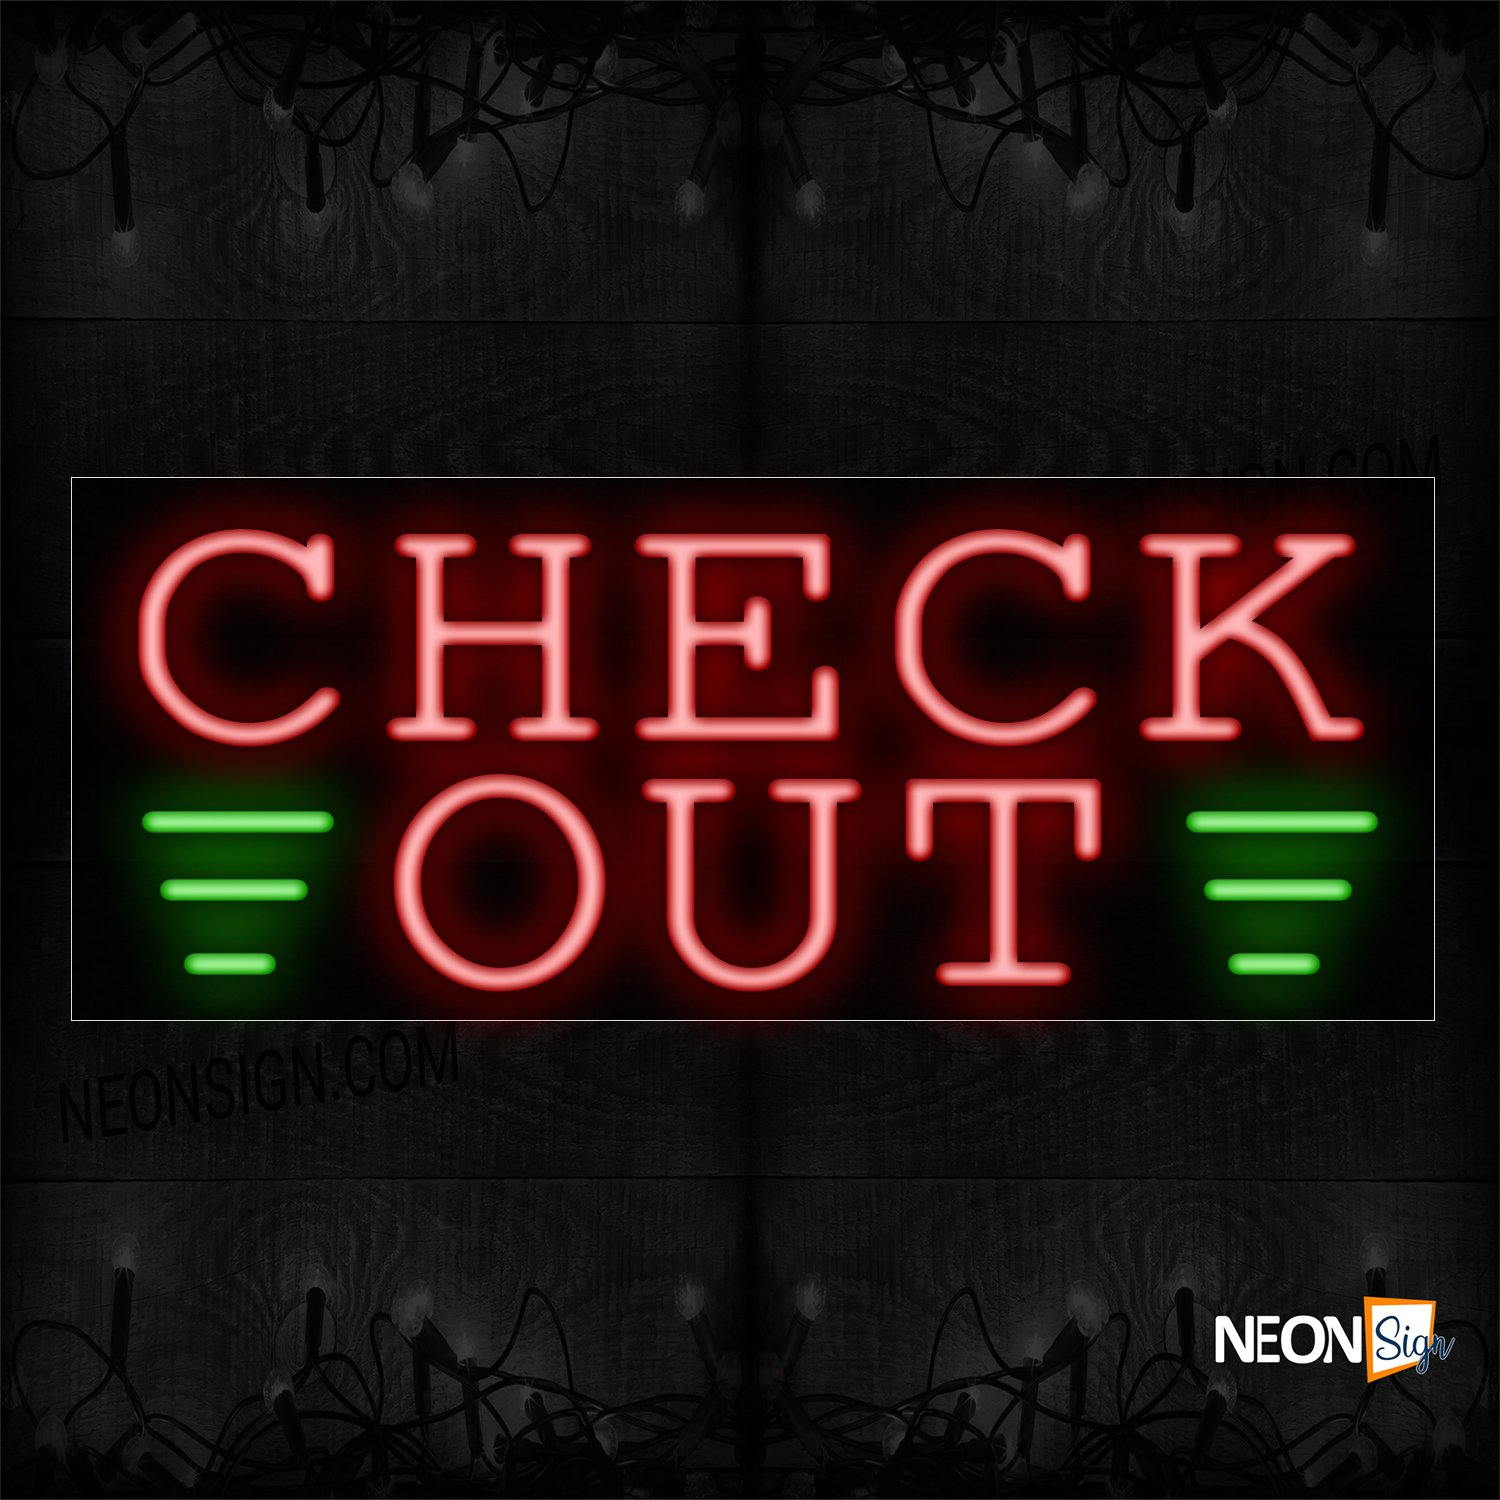 Image of 10765 Check Out With Broken Line Neon Sign_13x32 Black Backing